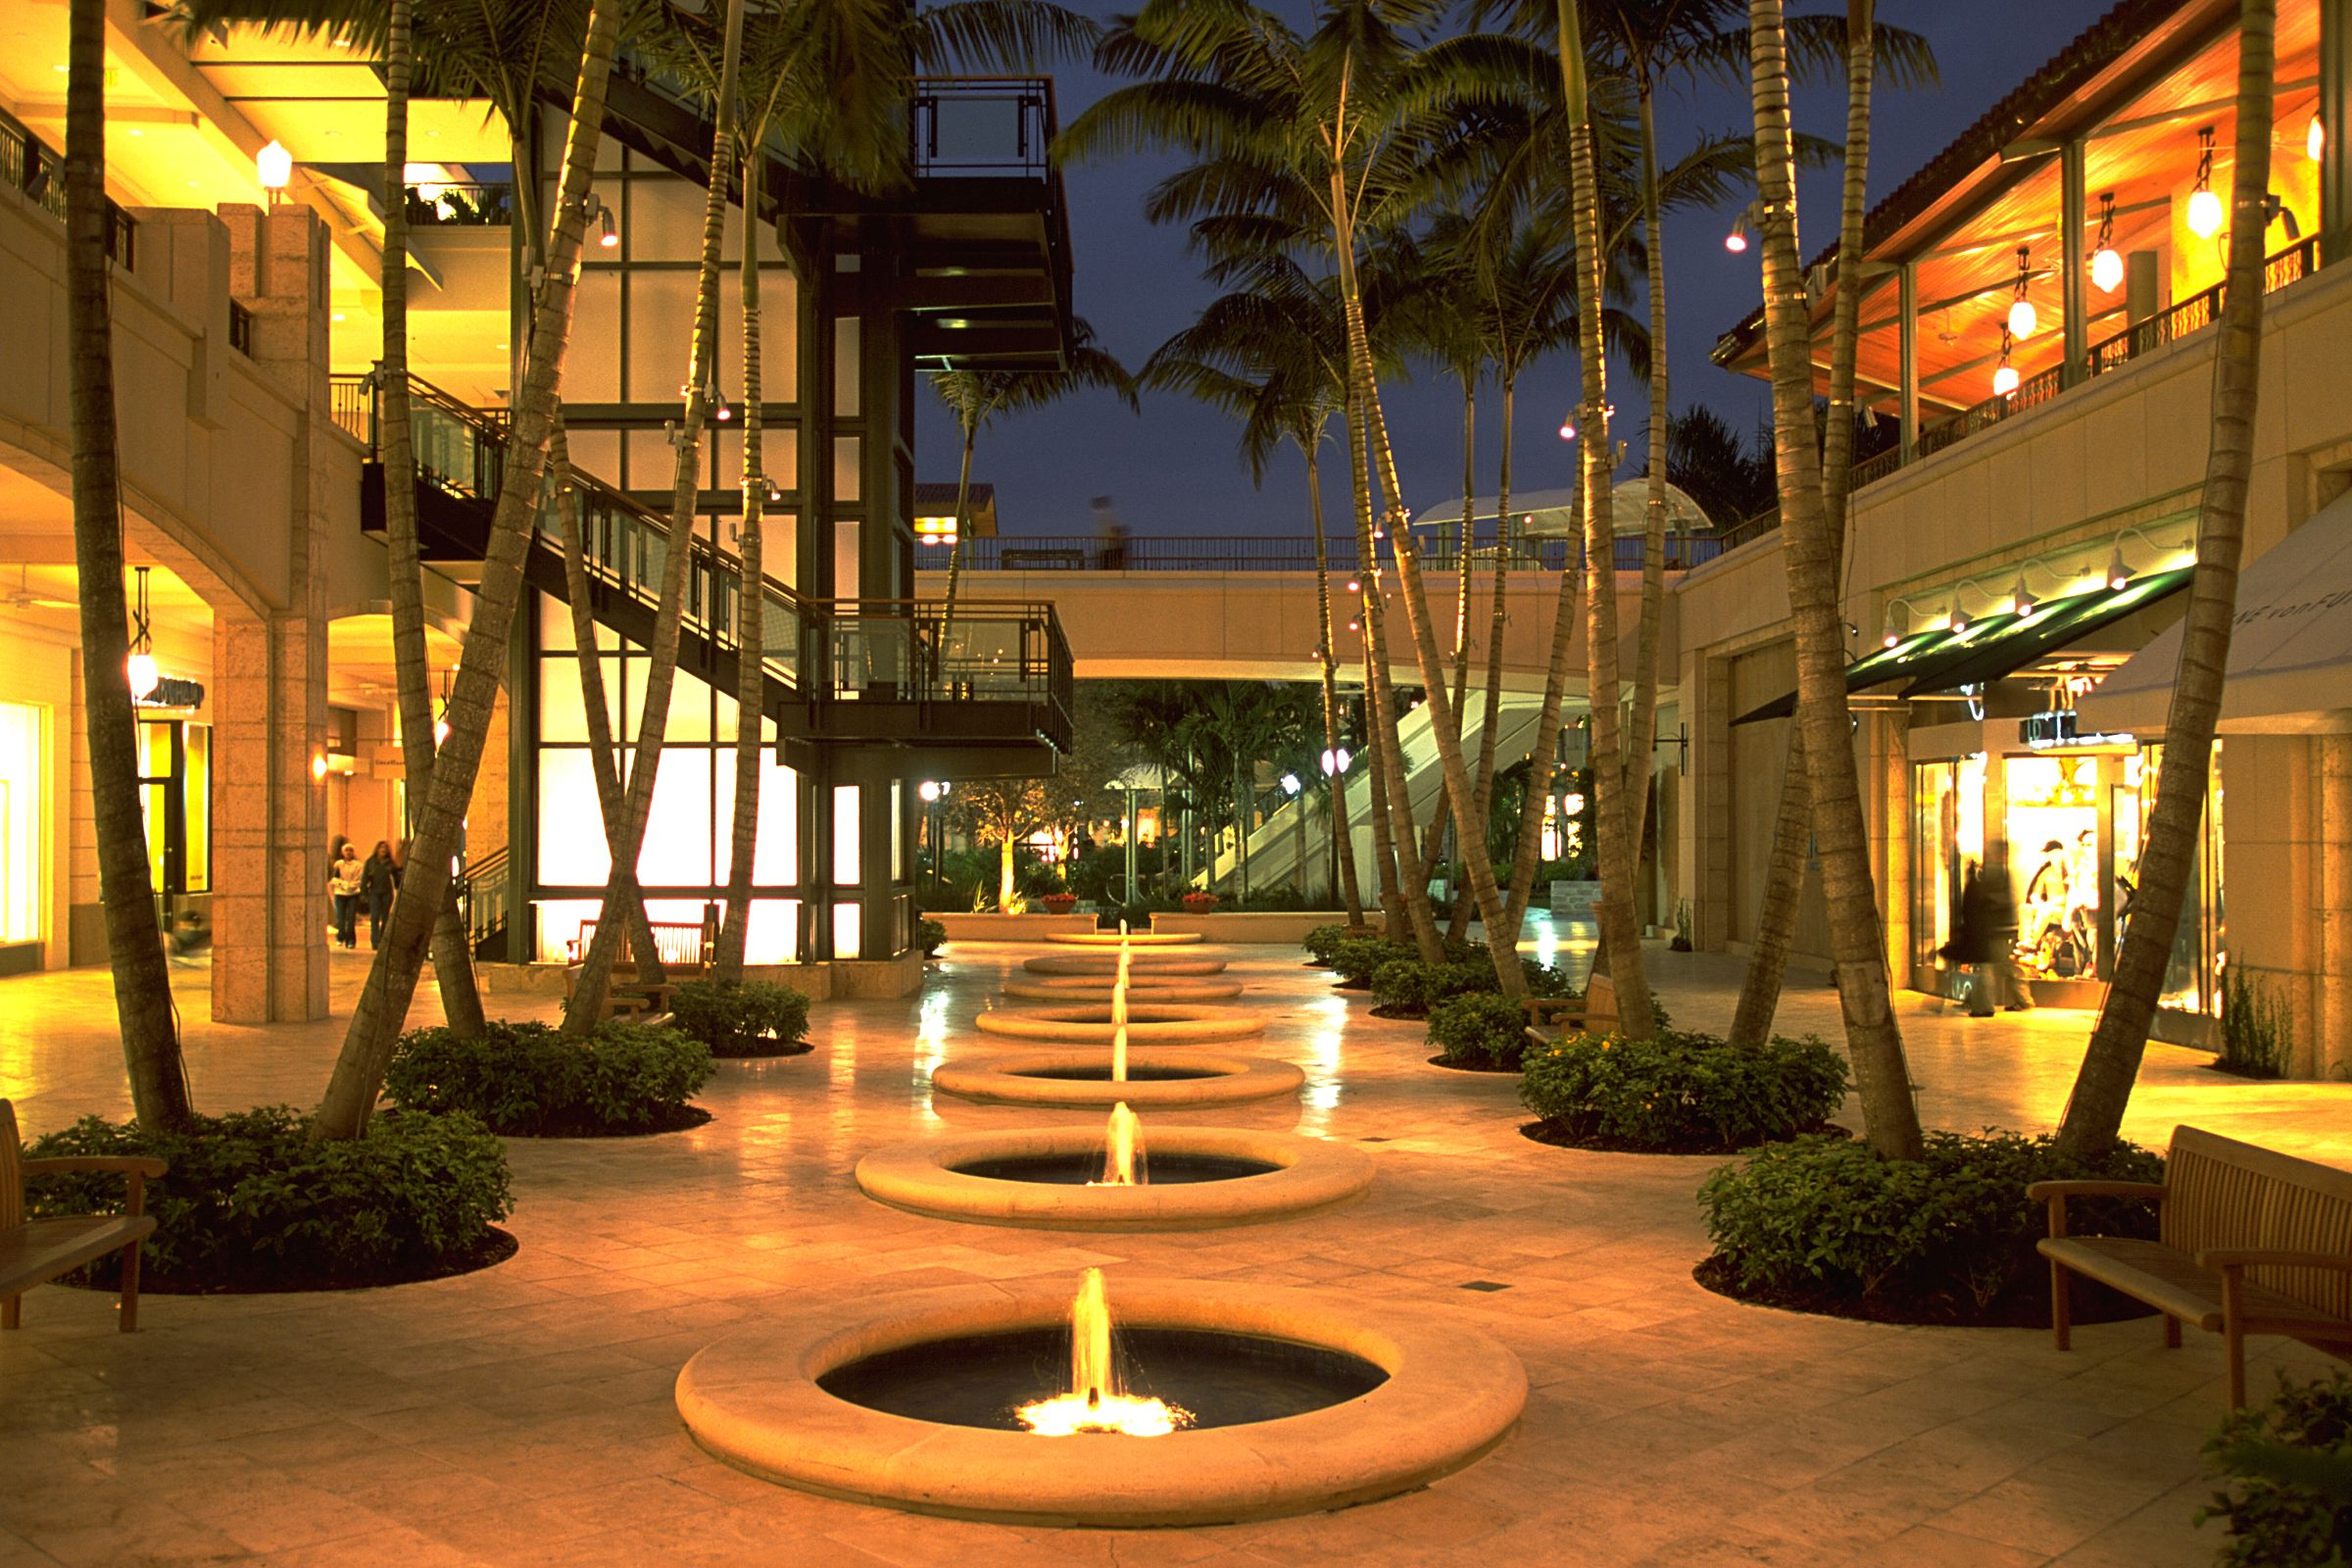 Village Of Merrick Park Coral Gables Fl Retail Street At